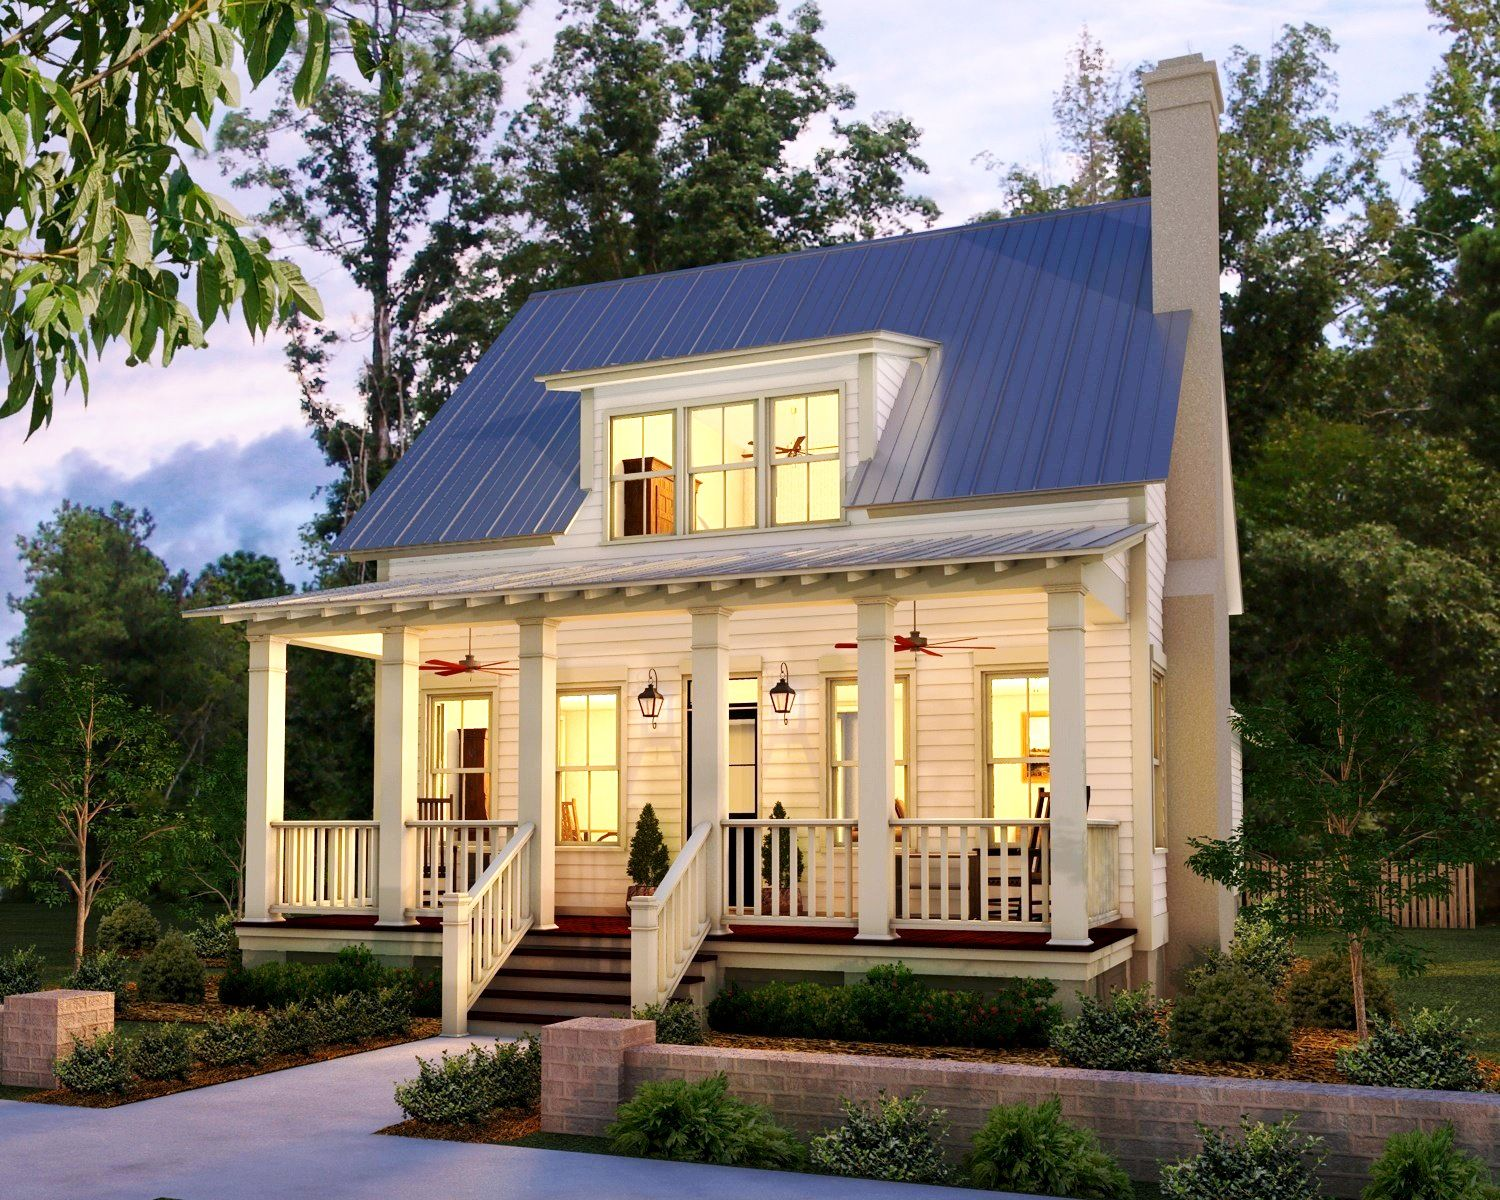 Saluda river club collection of homes columbia sc for Cute small houses